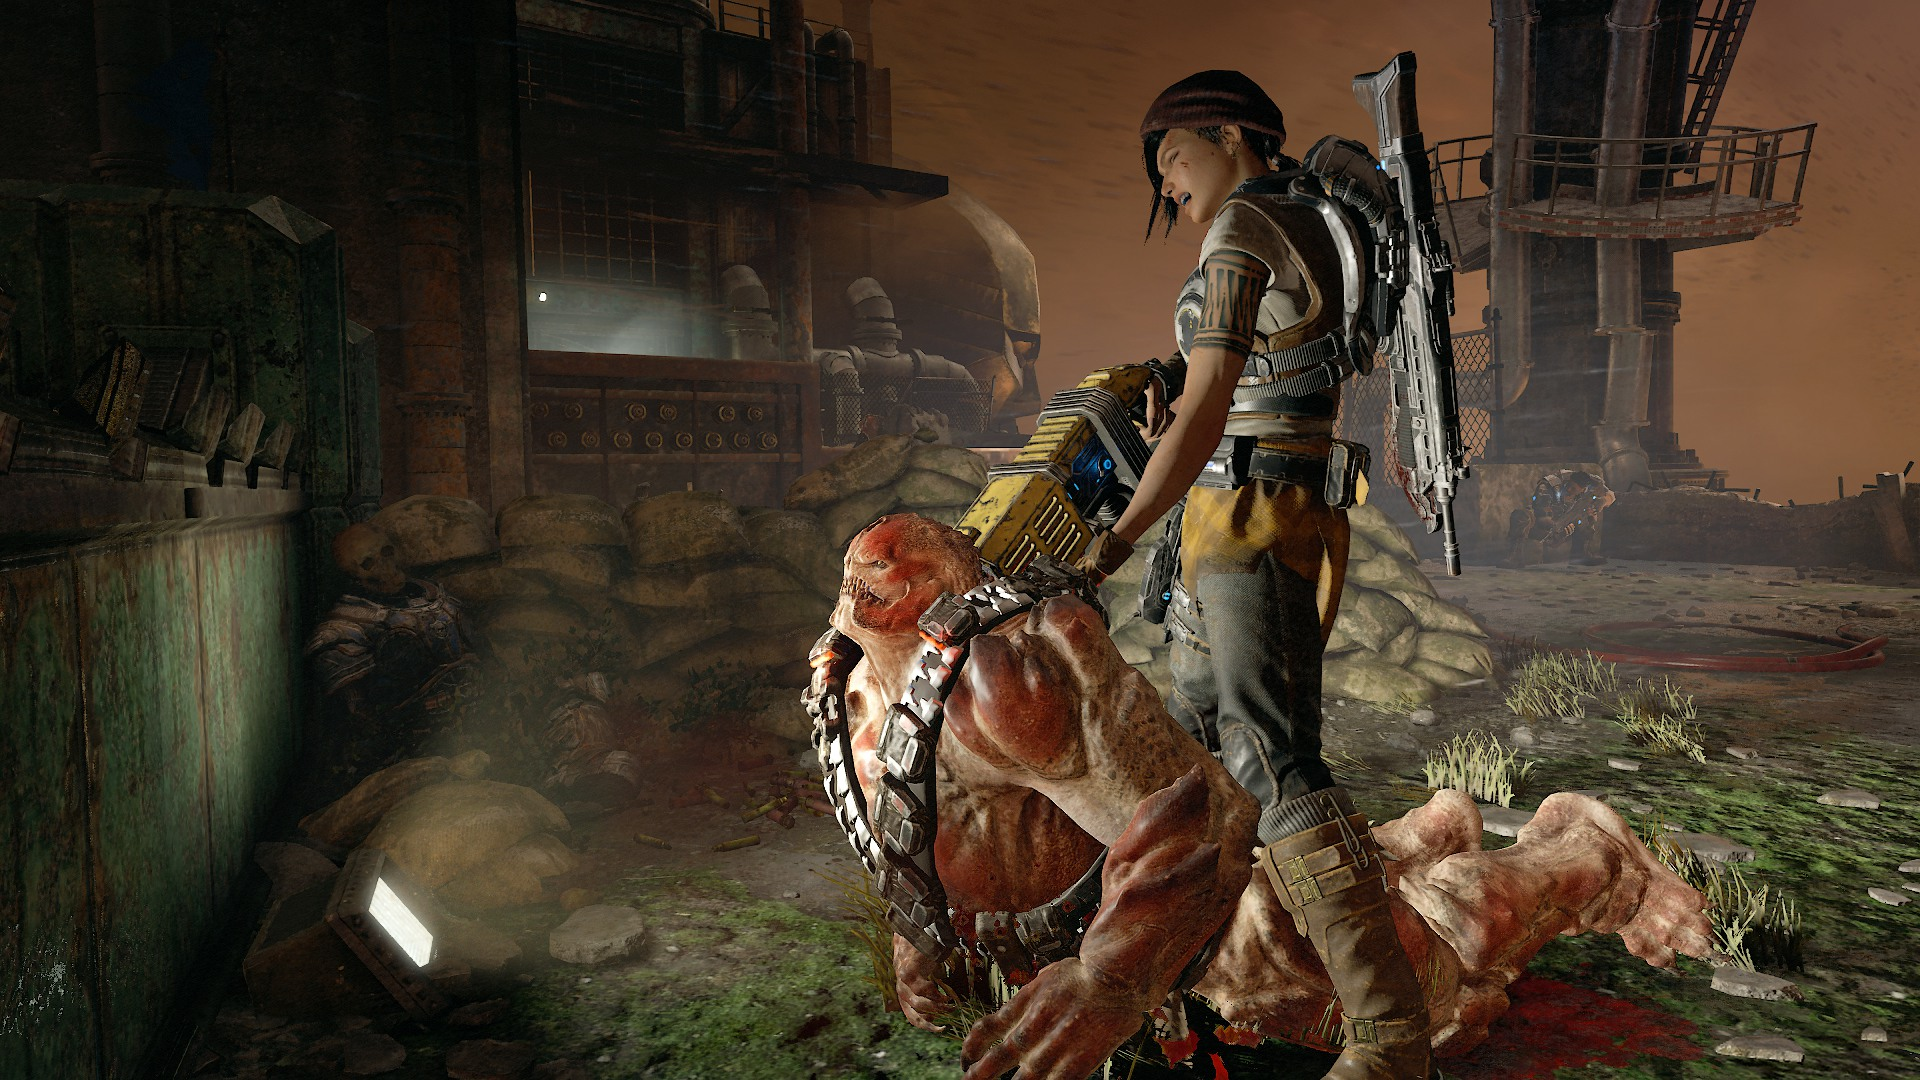 Gears Of War 4 Ultrawide: Gears Of War 4 Wallpapers, Pictures, Images